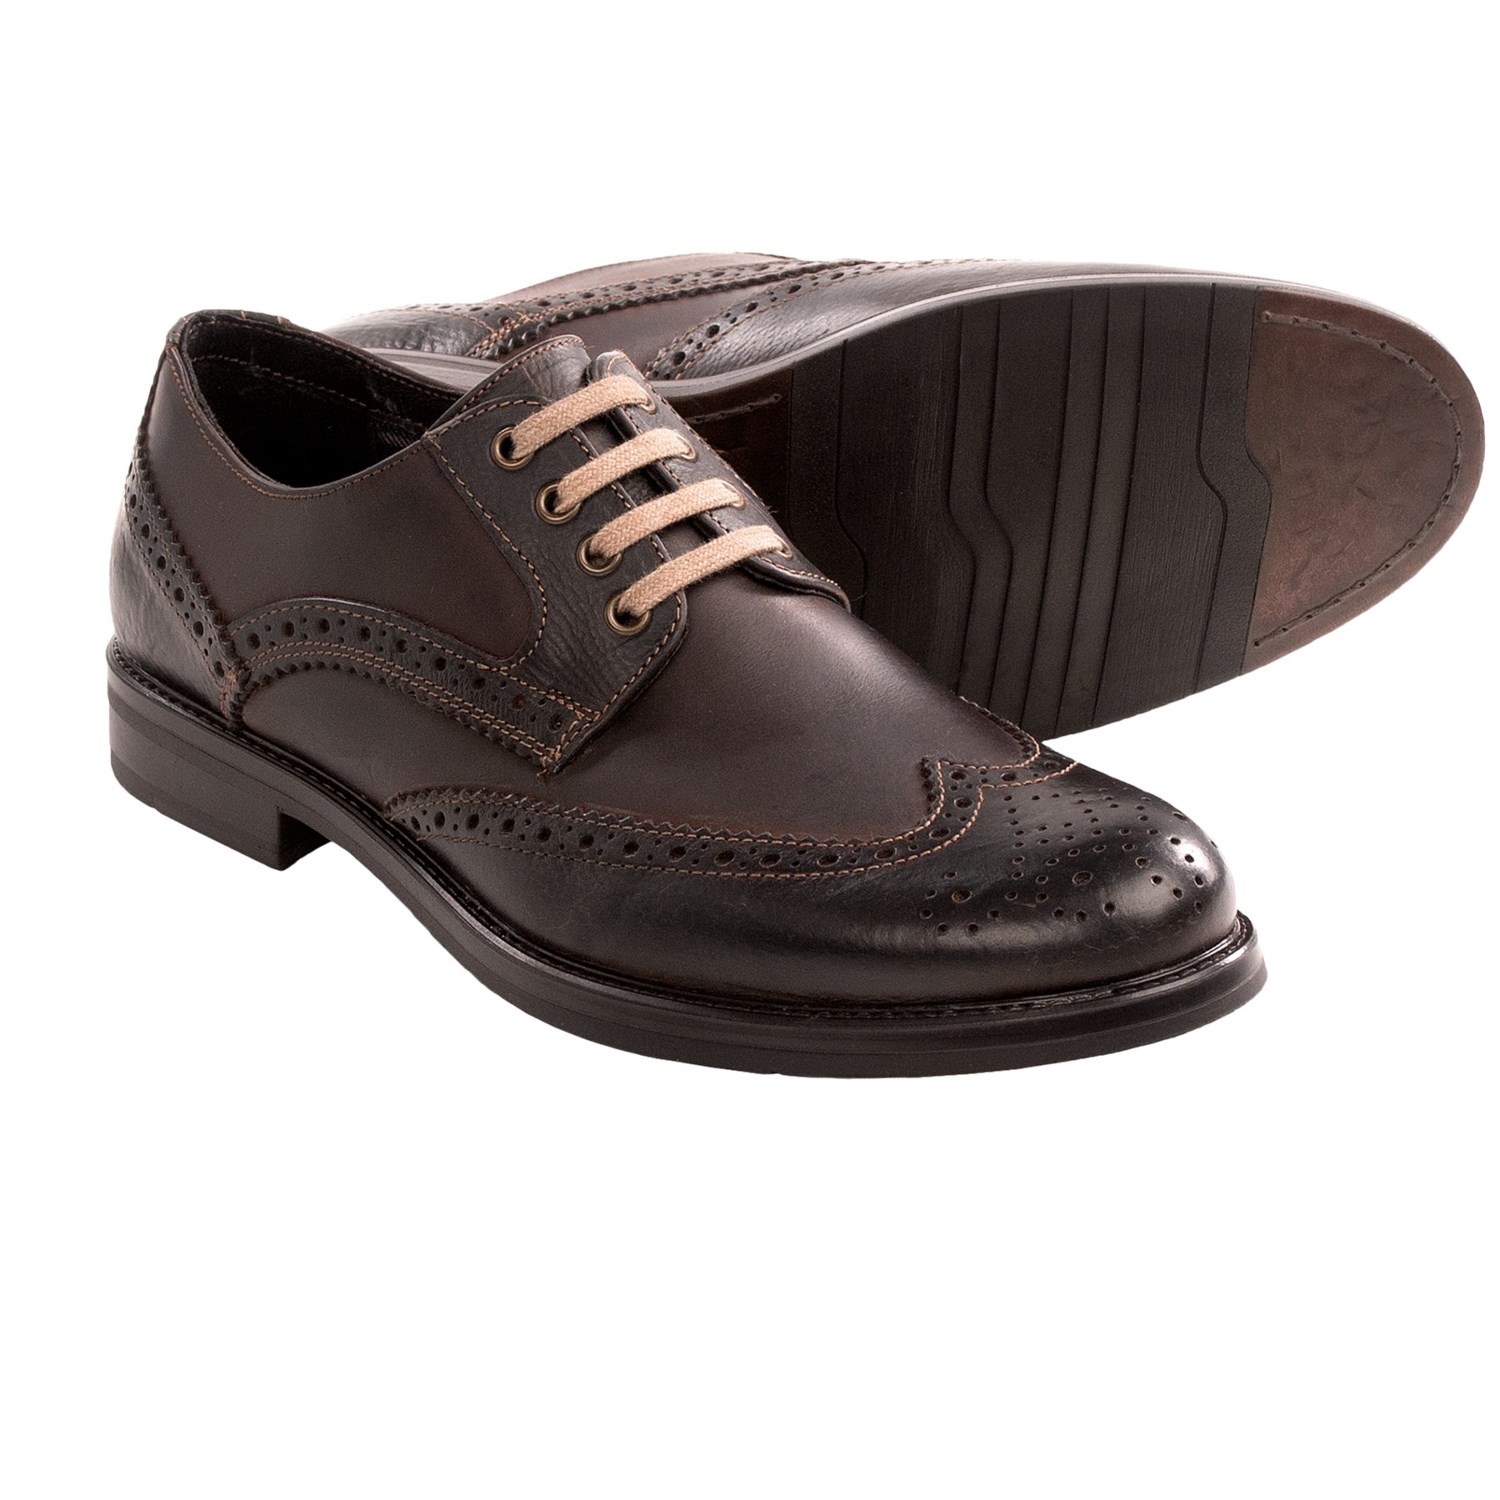 Free shipping on men's wingtip boots at distrib-wjmx2fn9.ga Shop from the best brands. Totally free shipping and returns.